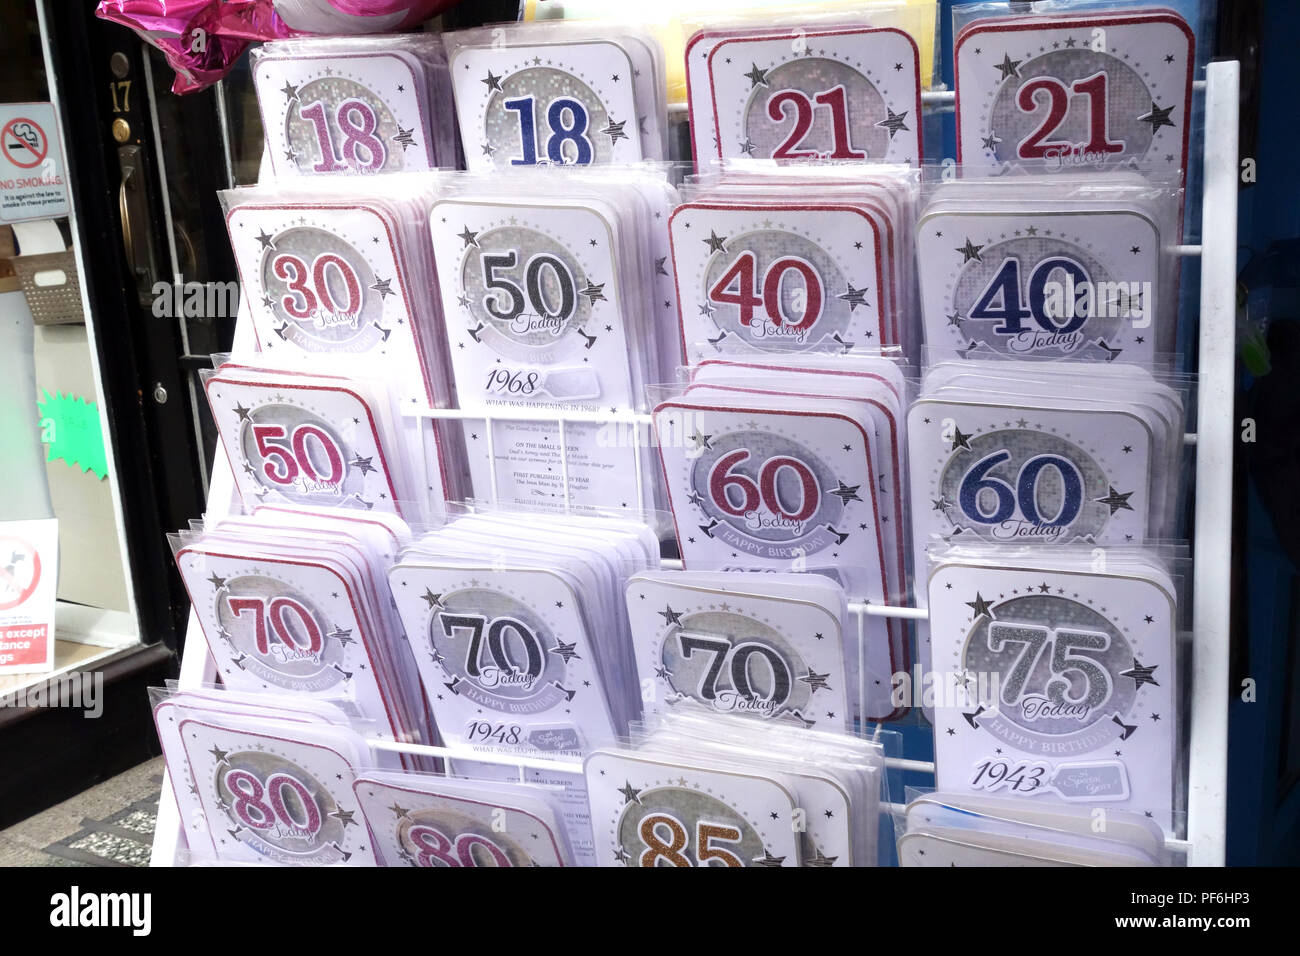 Age is just a number Birthday Cards with different ages in numbers on front of card. 18 to 90 Birthday Cards in shop display on a street frontage - Stock Image